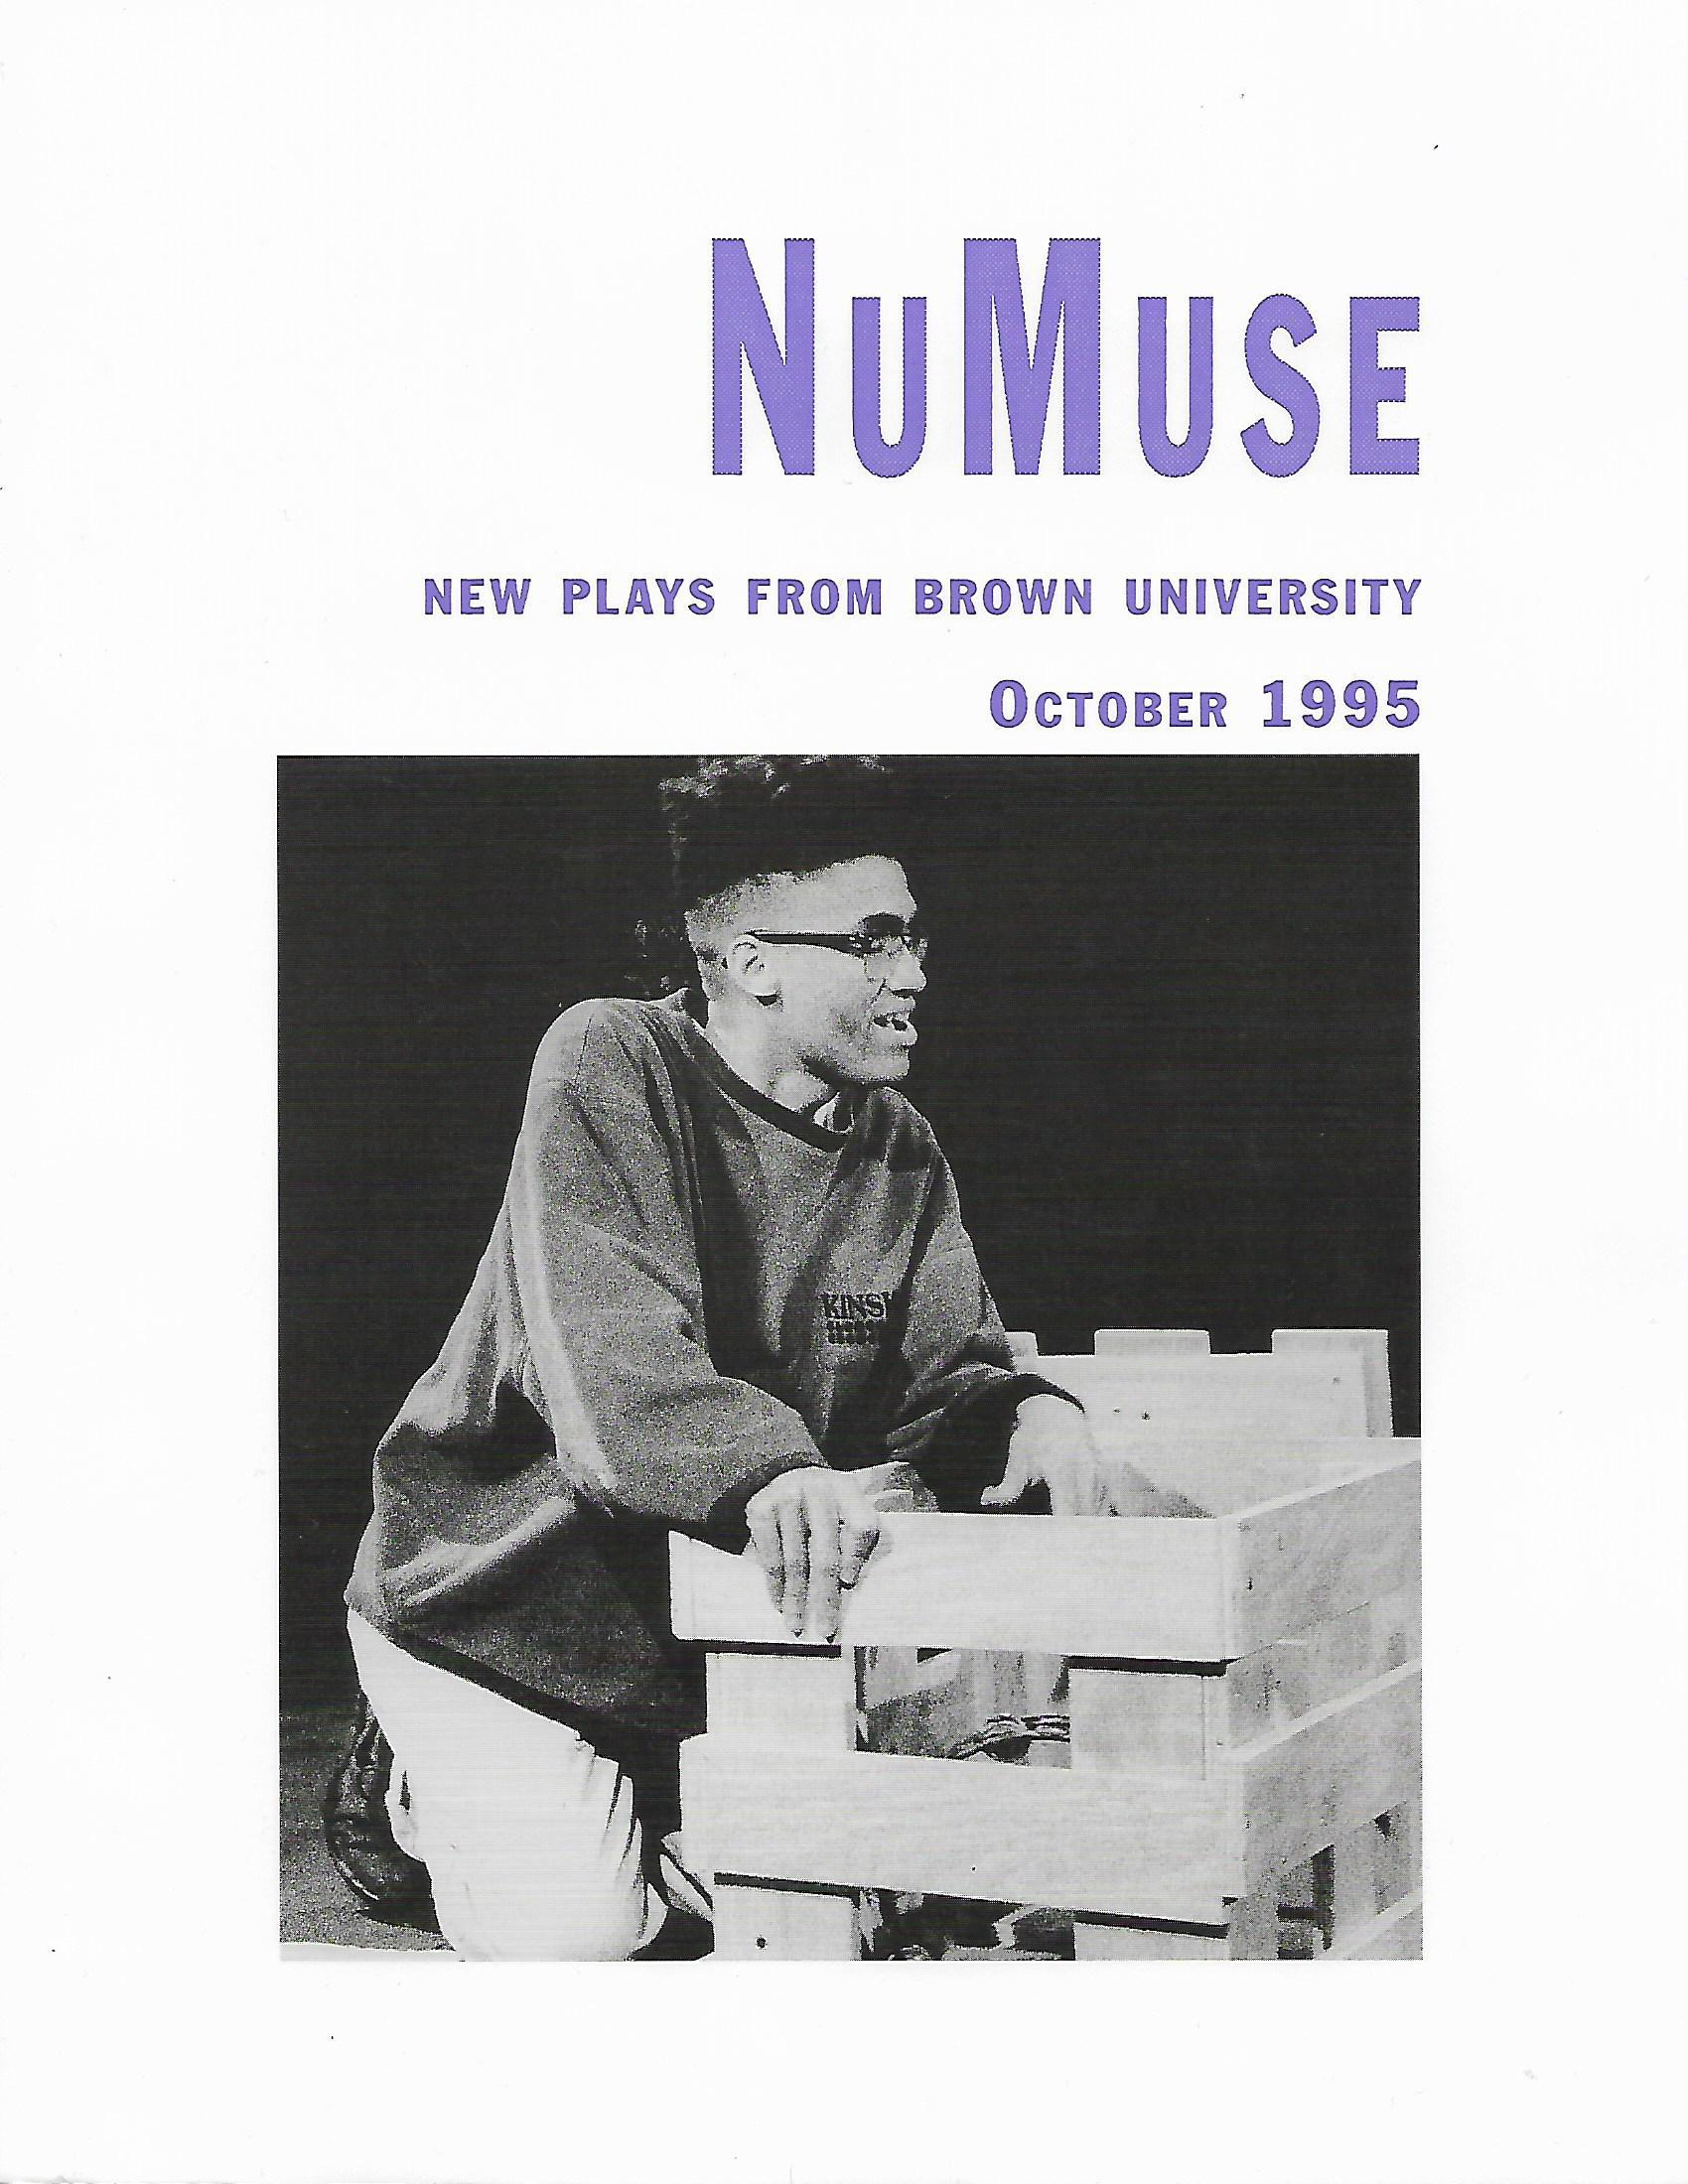 NuMuse: New Plays from Brown University, October 1995, second issue